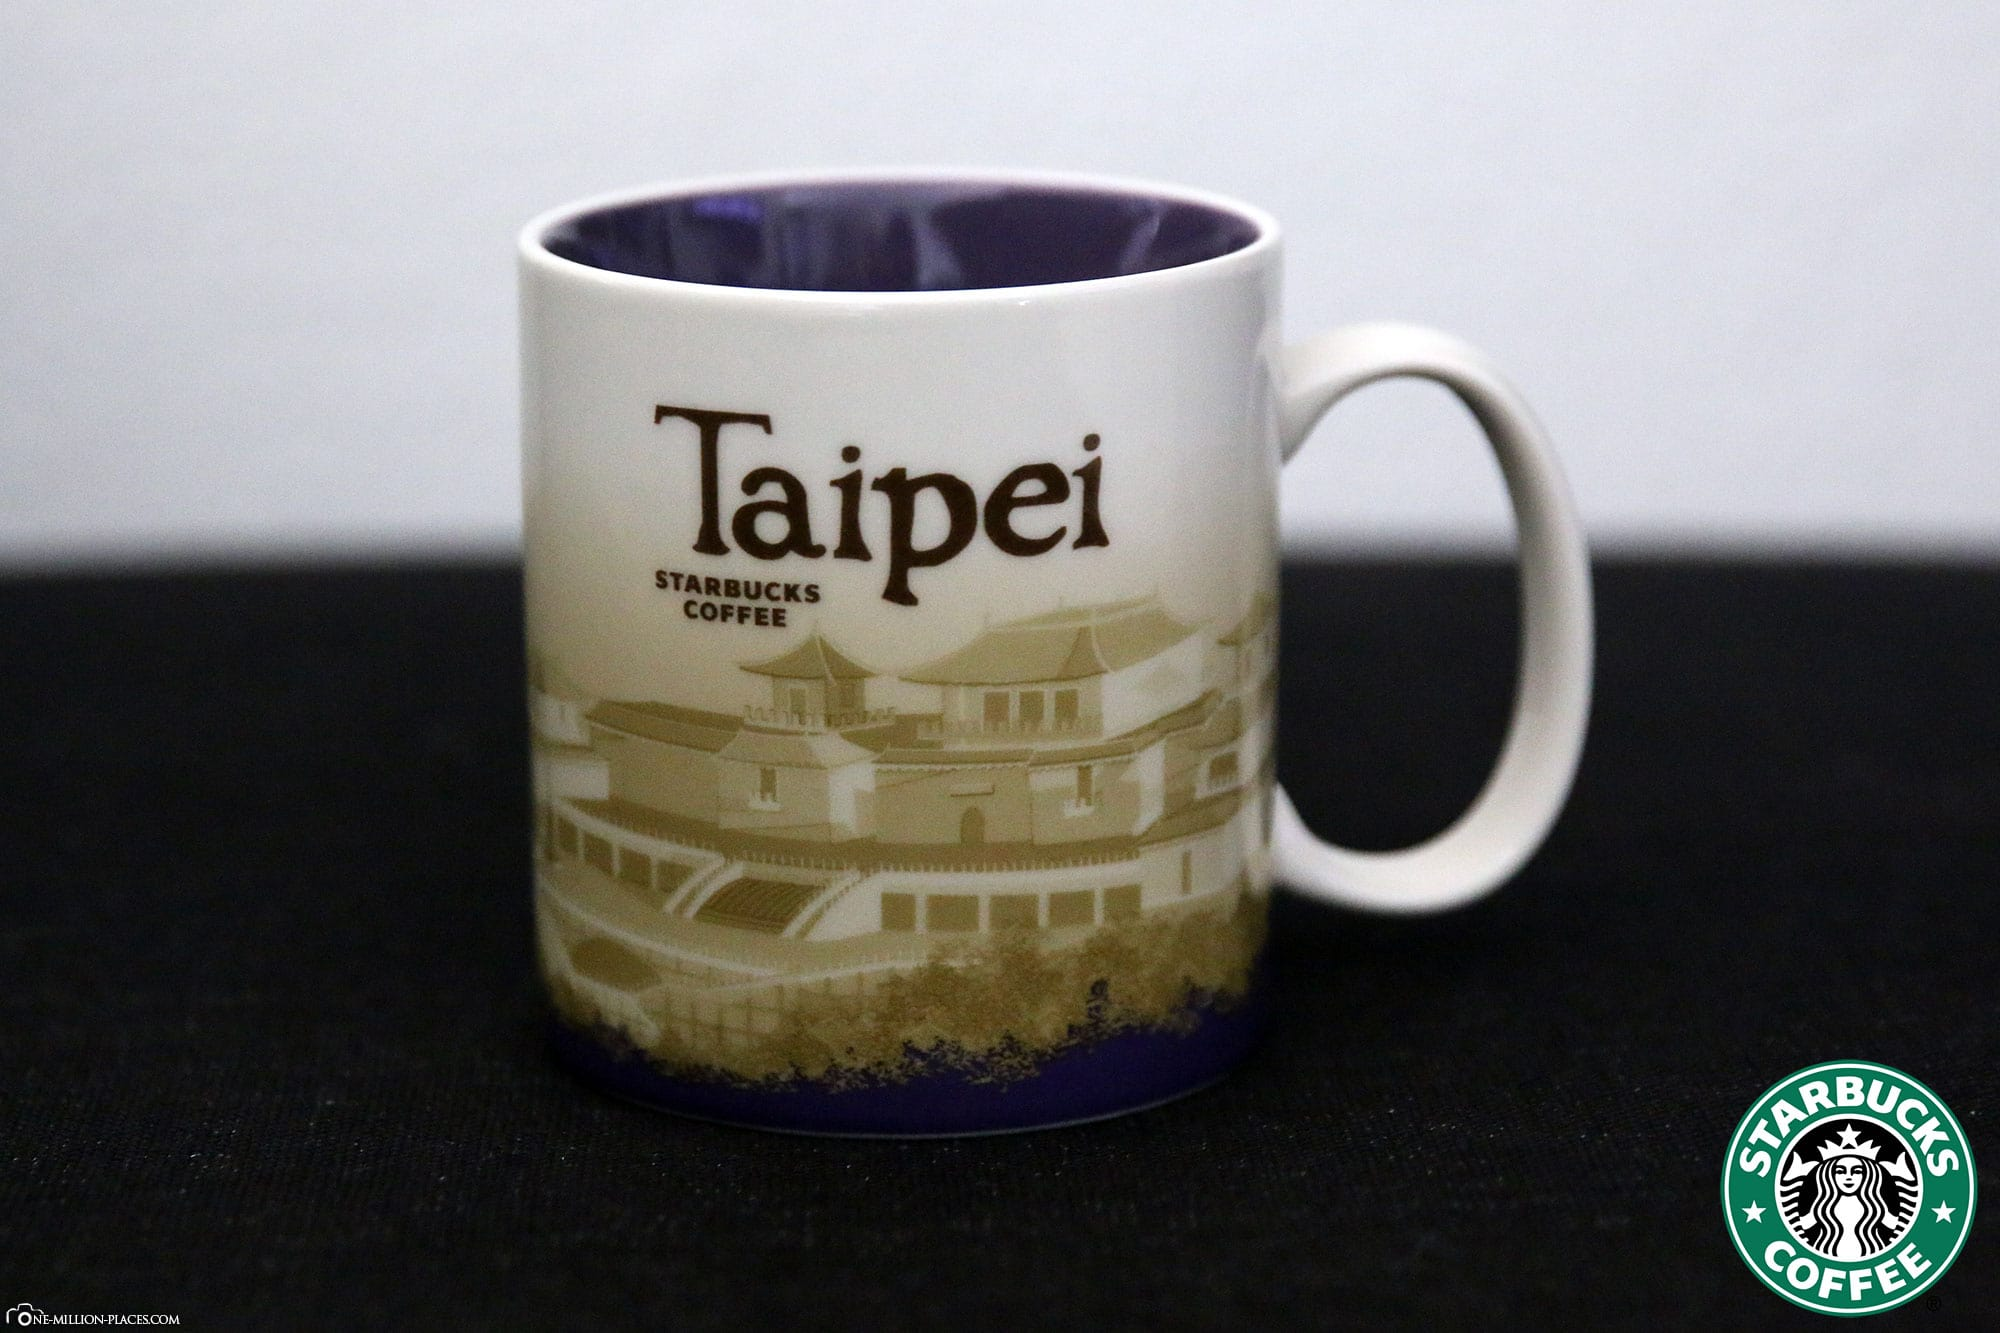 Taipeh, Starbucks Tasse, Global Icon Serie, City Mugs, Sammlung, Taiwan, Reisebericht